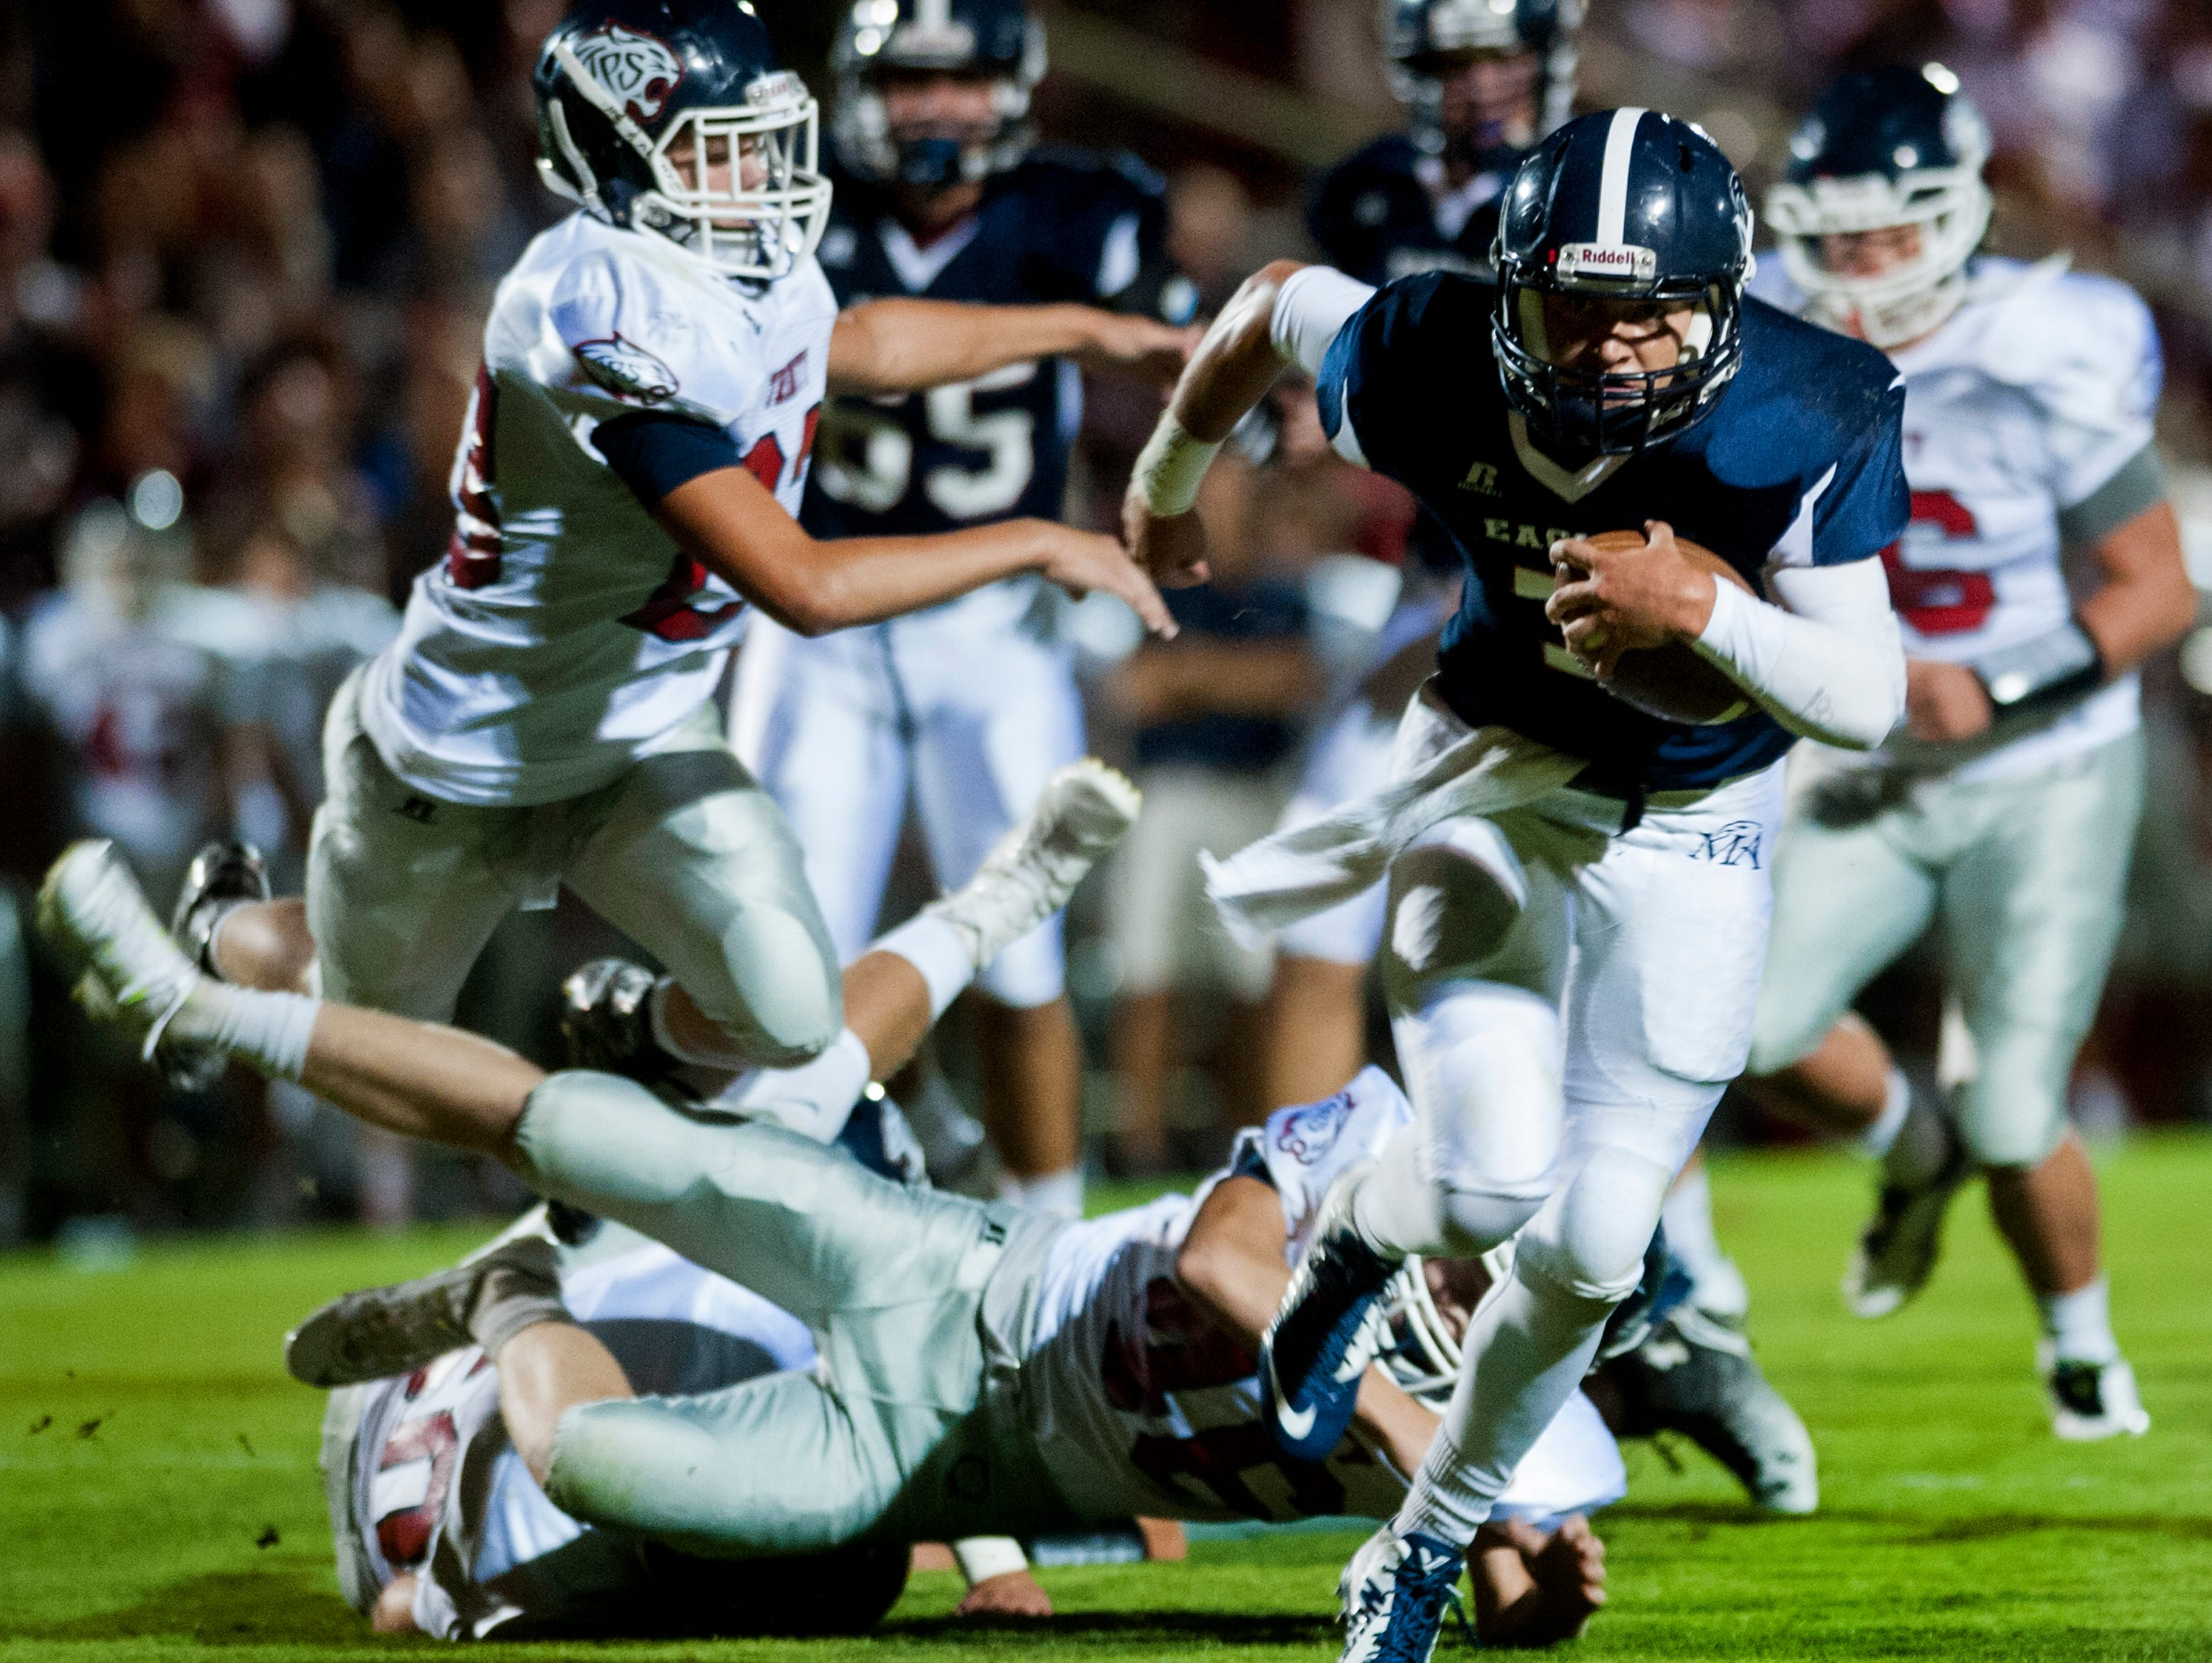 Montgomery Academy's Barton Lester breaks away for a long touchdown run in the first quarter against Trinity at the Montgomery Academy campus in Montgomery Al. on Friday September 25, 2015.